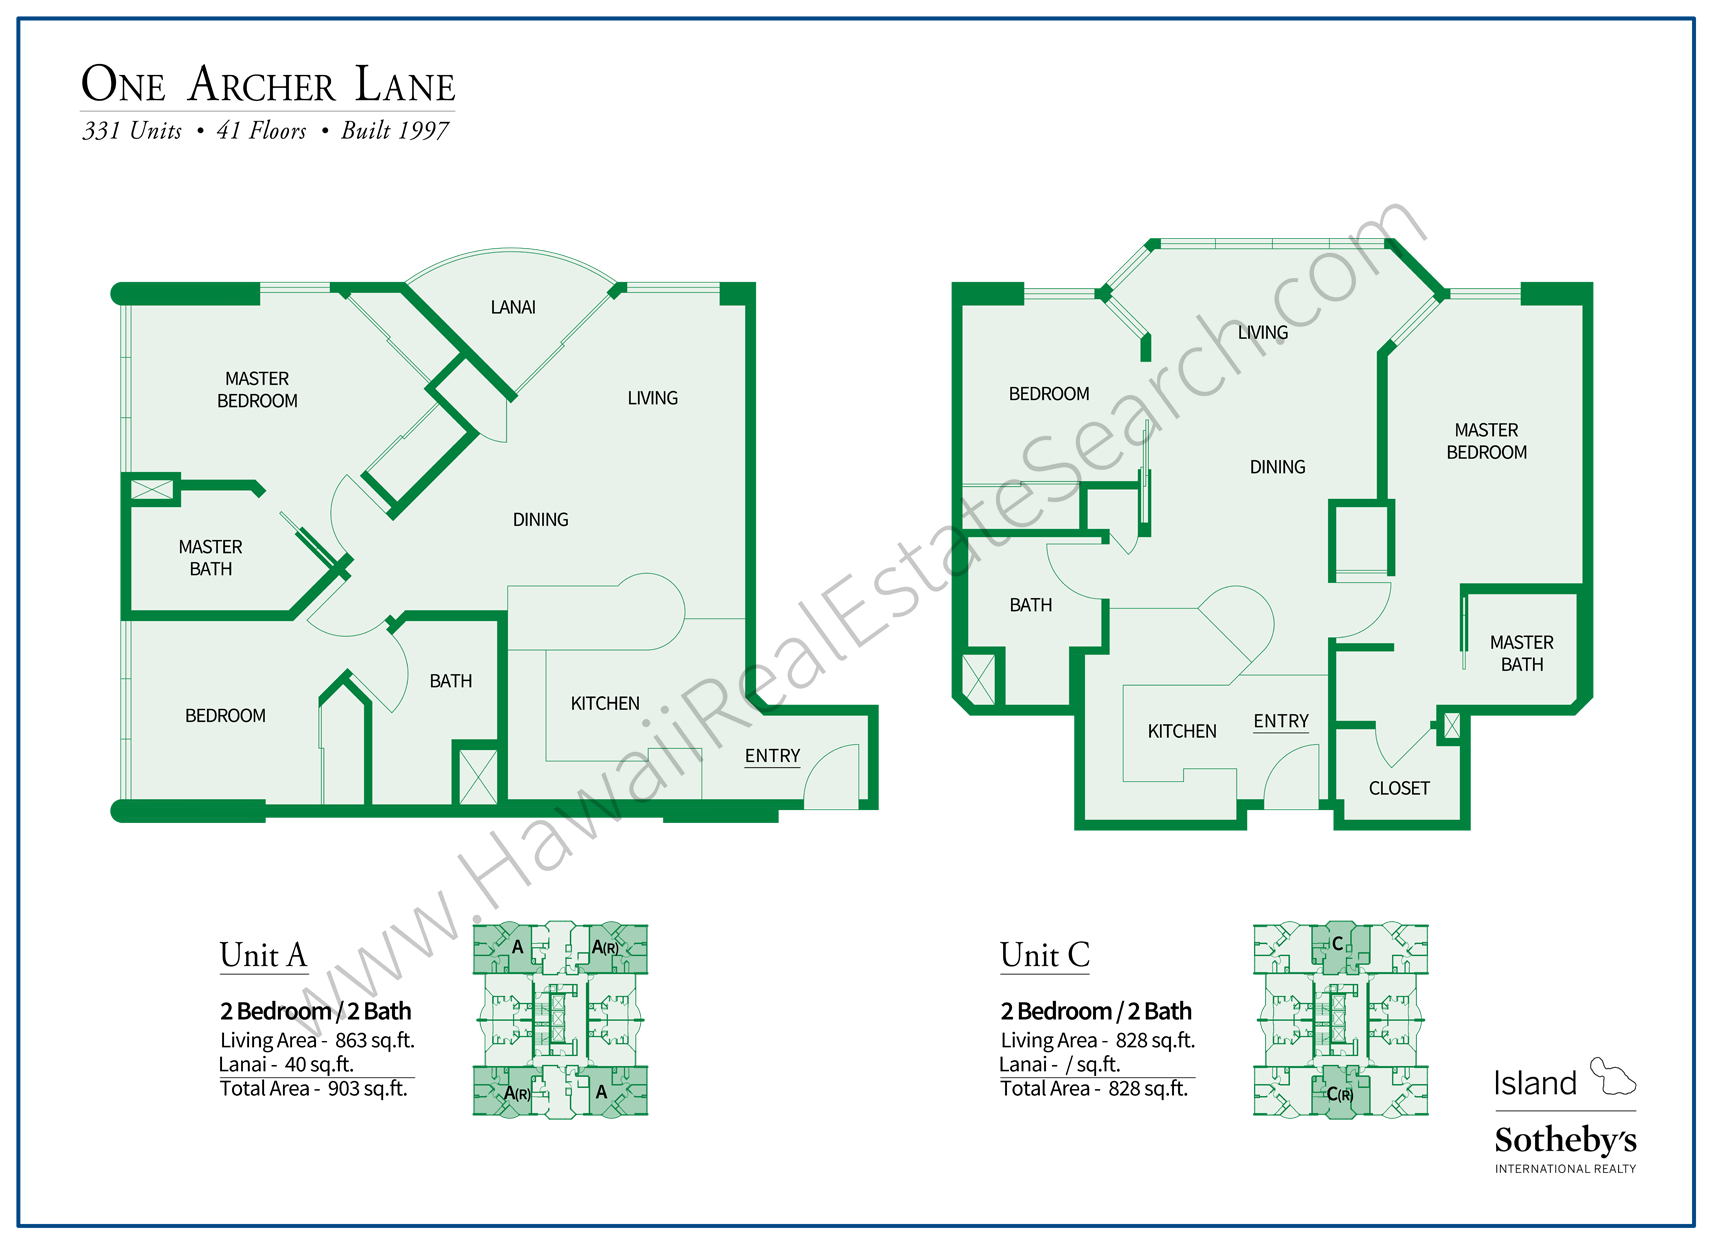 One Archer Lane Floor Plans 2018